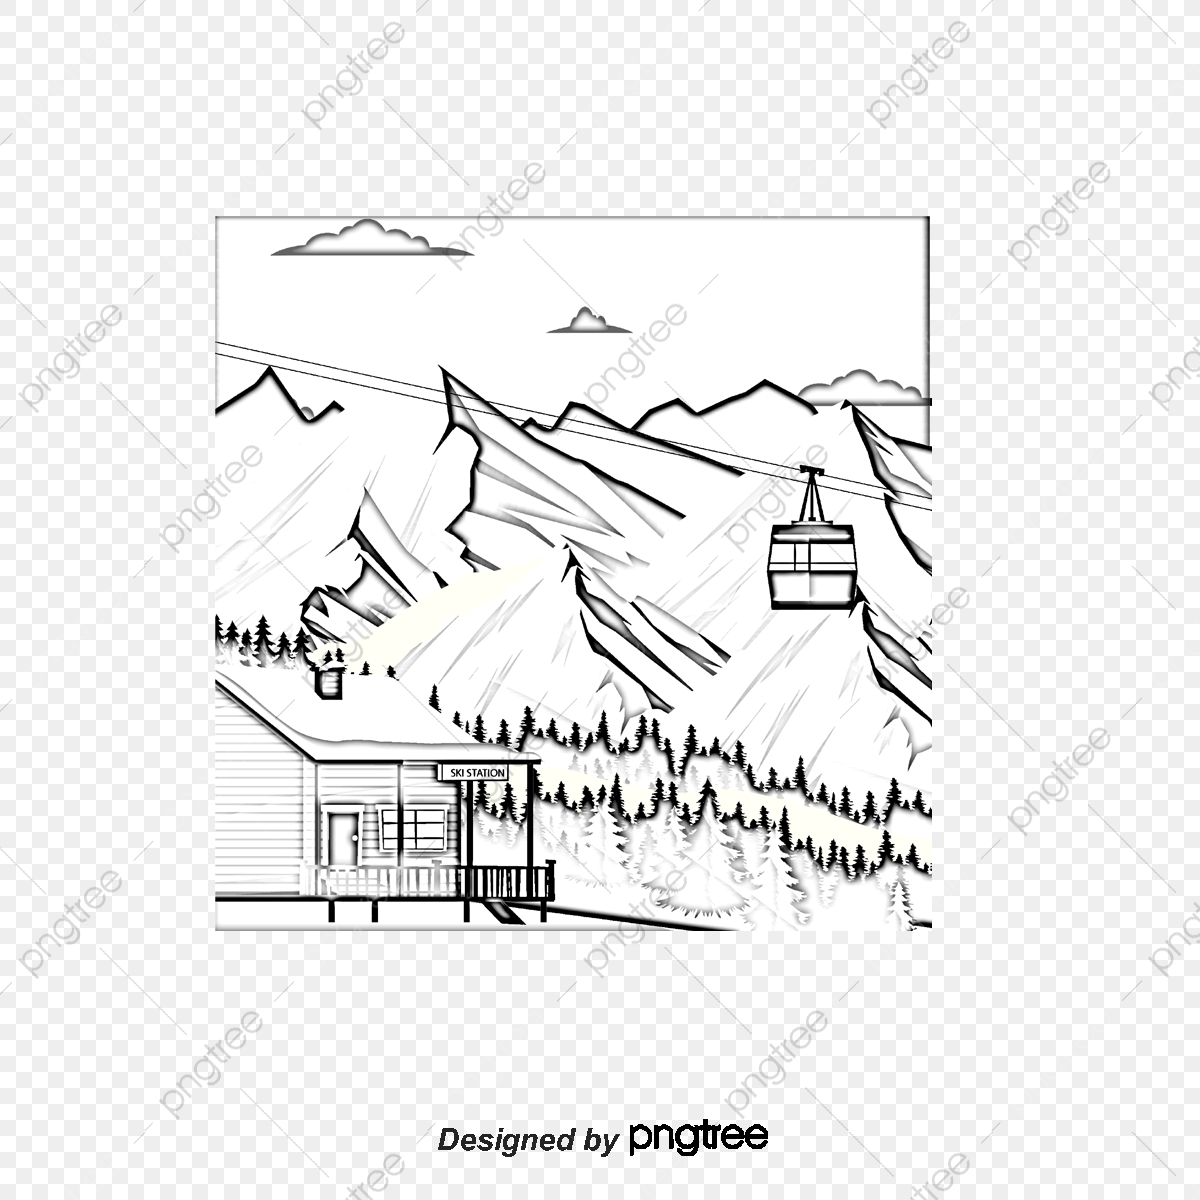 hight resolution of commercial use resource upgrade to premium plan and get license authorization upgradenow hand painted plateau snow mountain